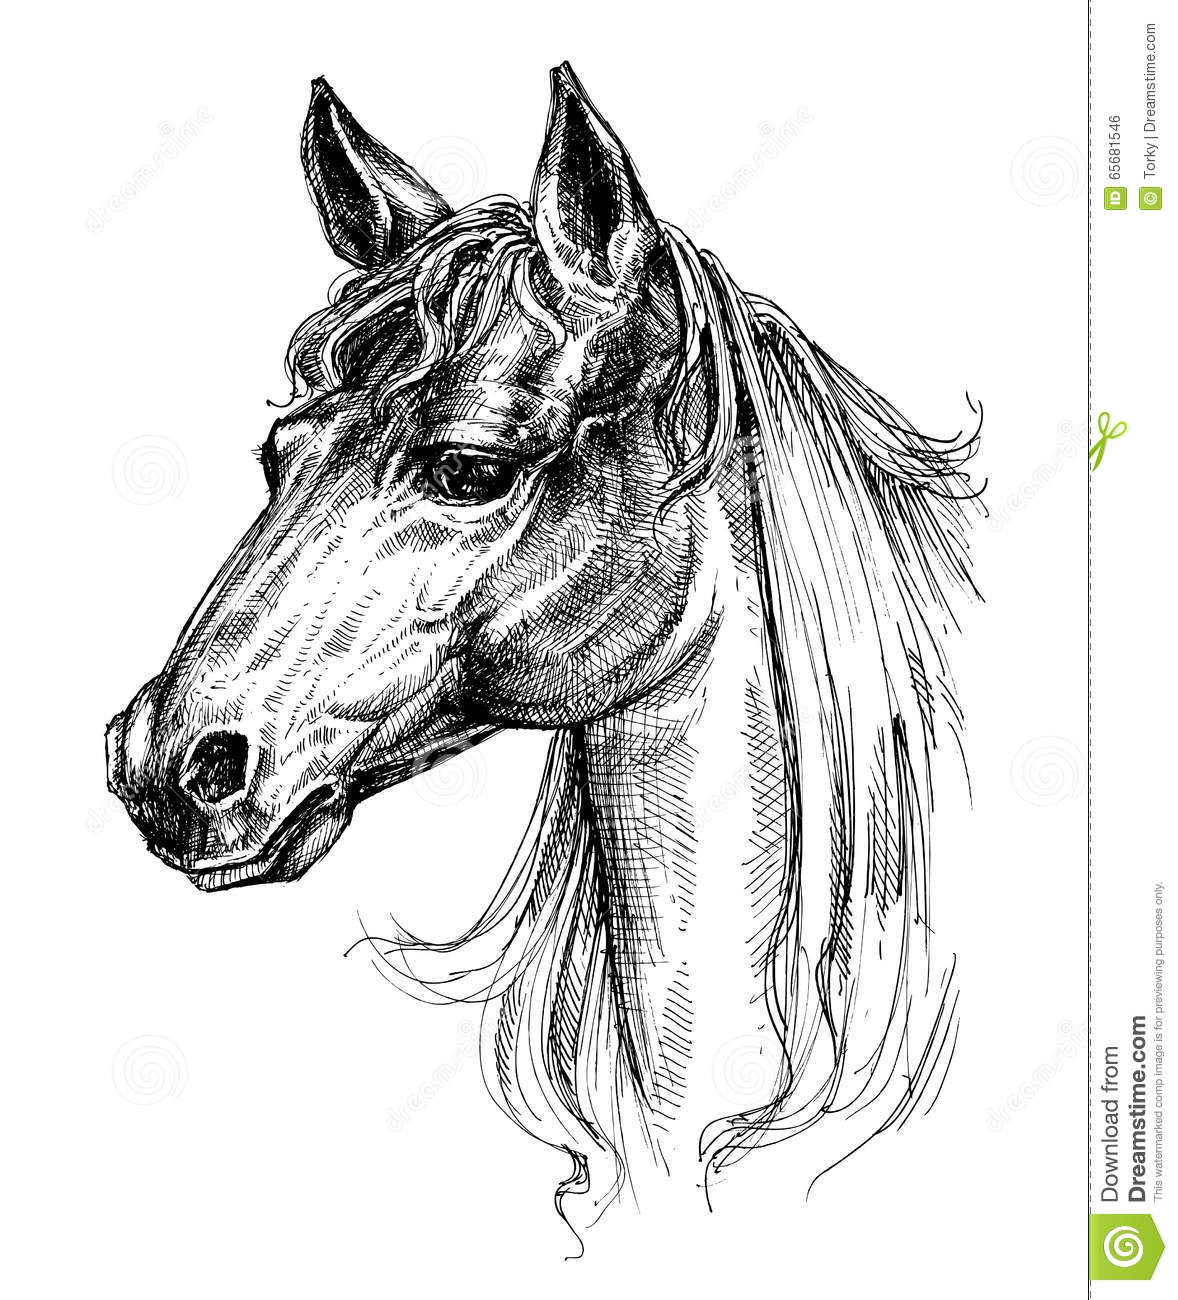 Dessin De Tete De Cheval Illustration De Vecteur